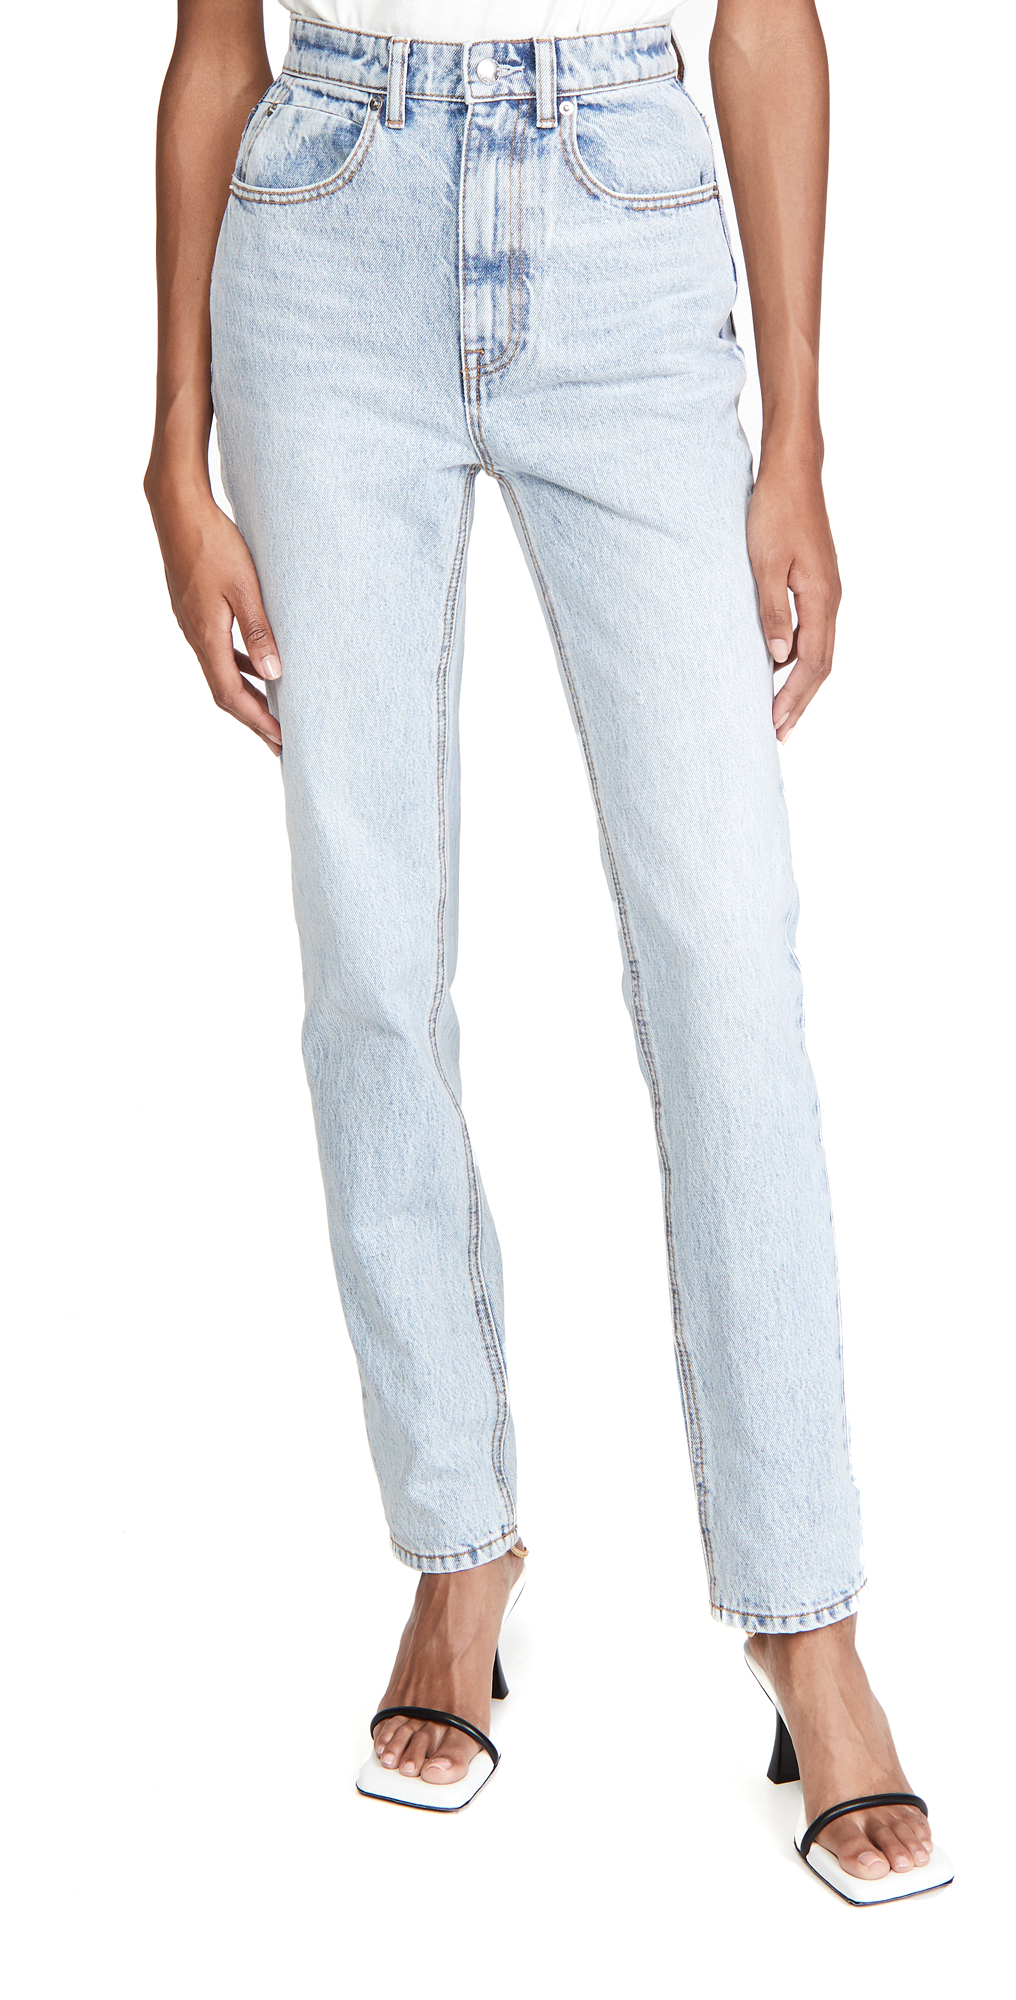 High Waist Slim Stacked Jeans